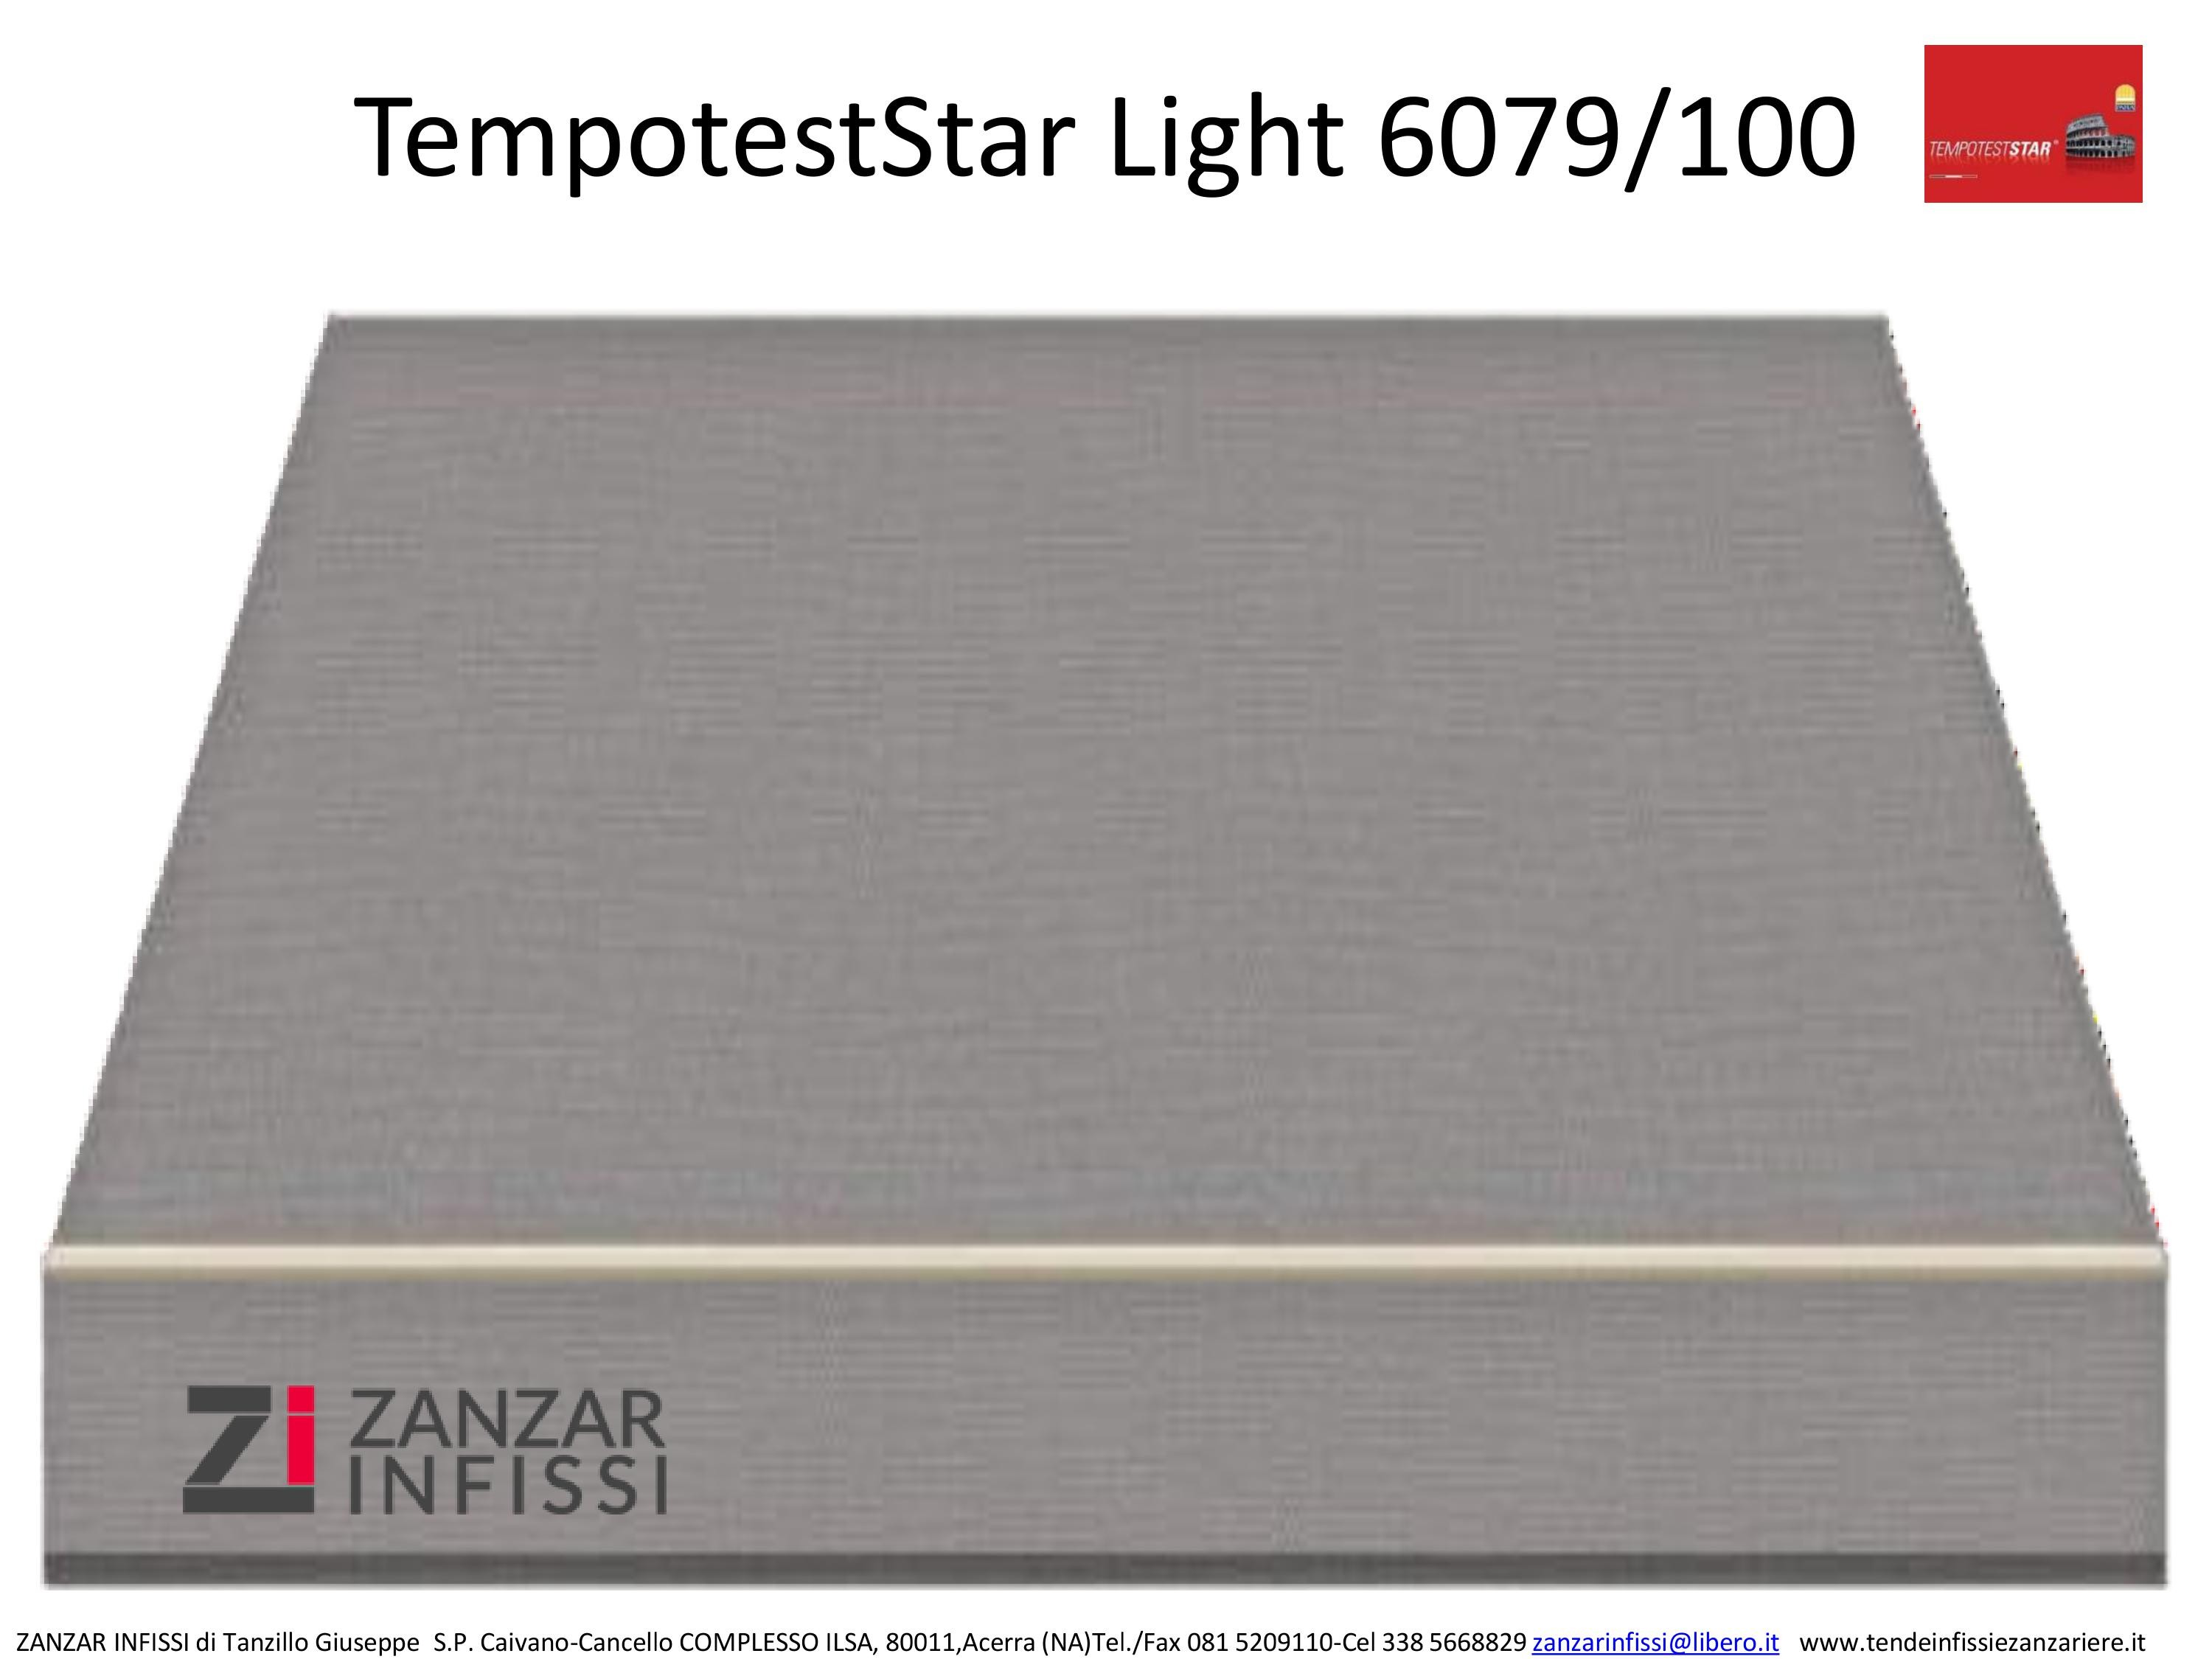 Tempotest star light 6079/100